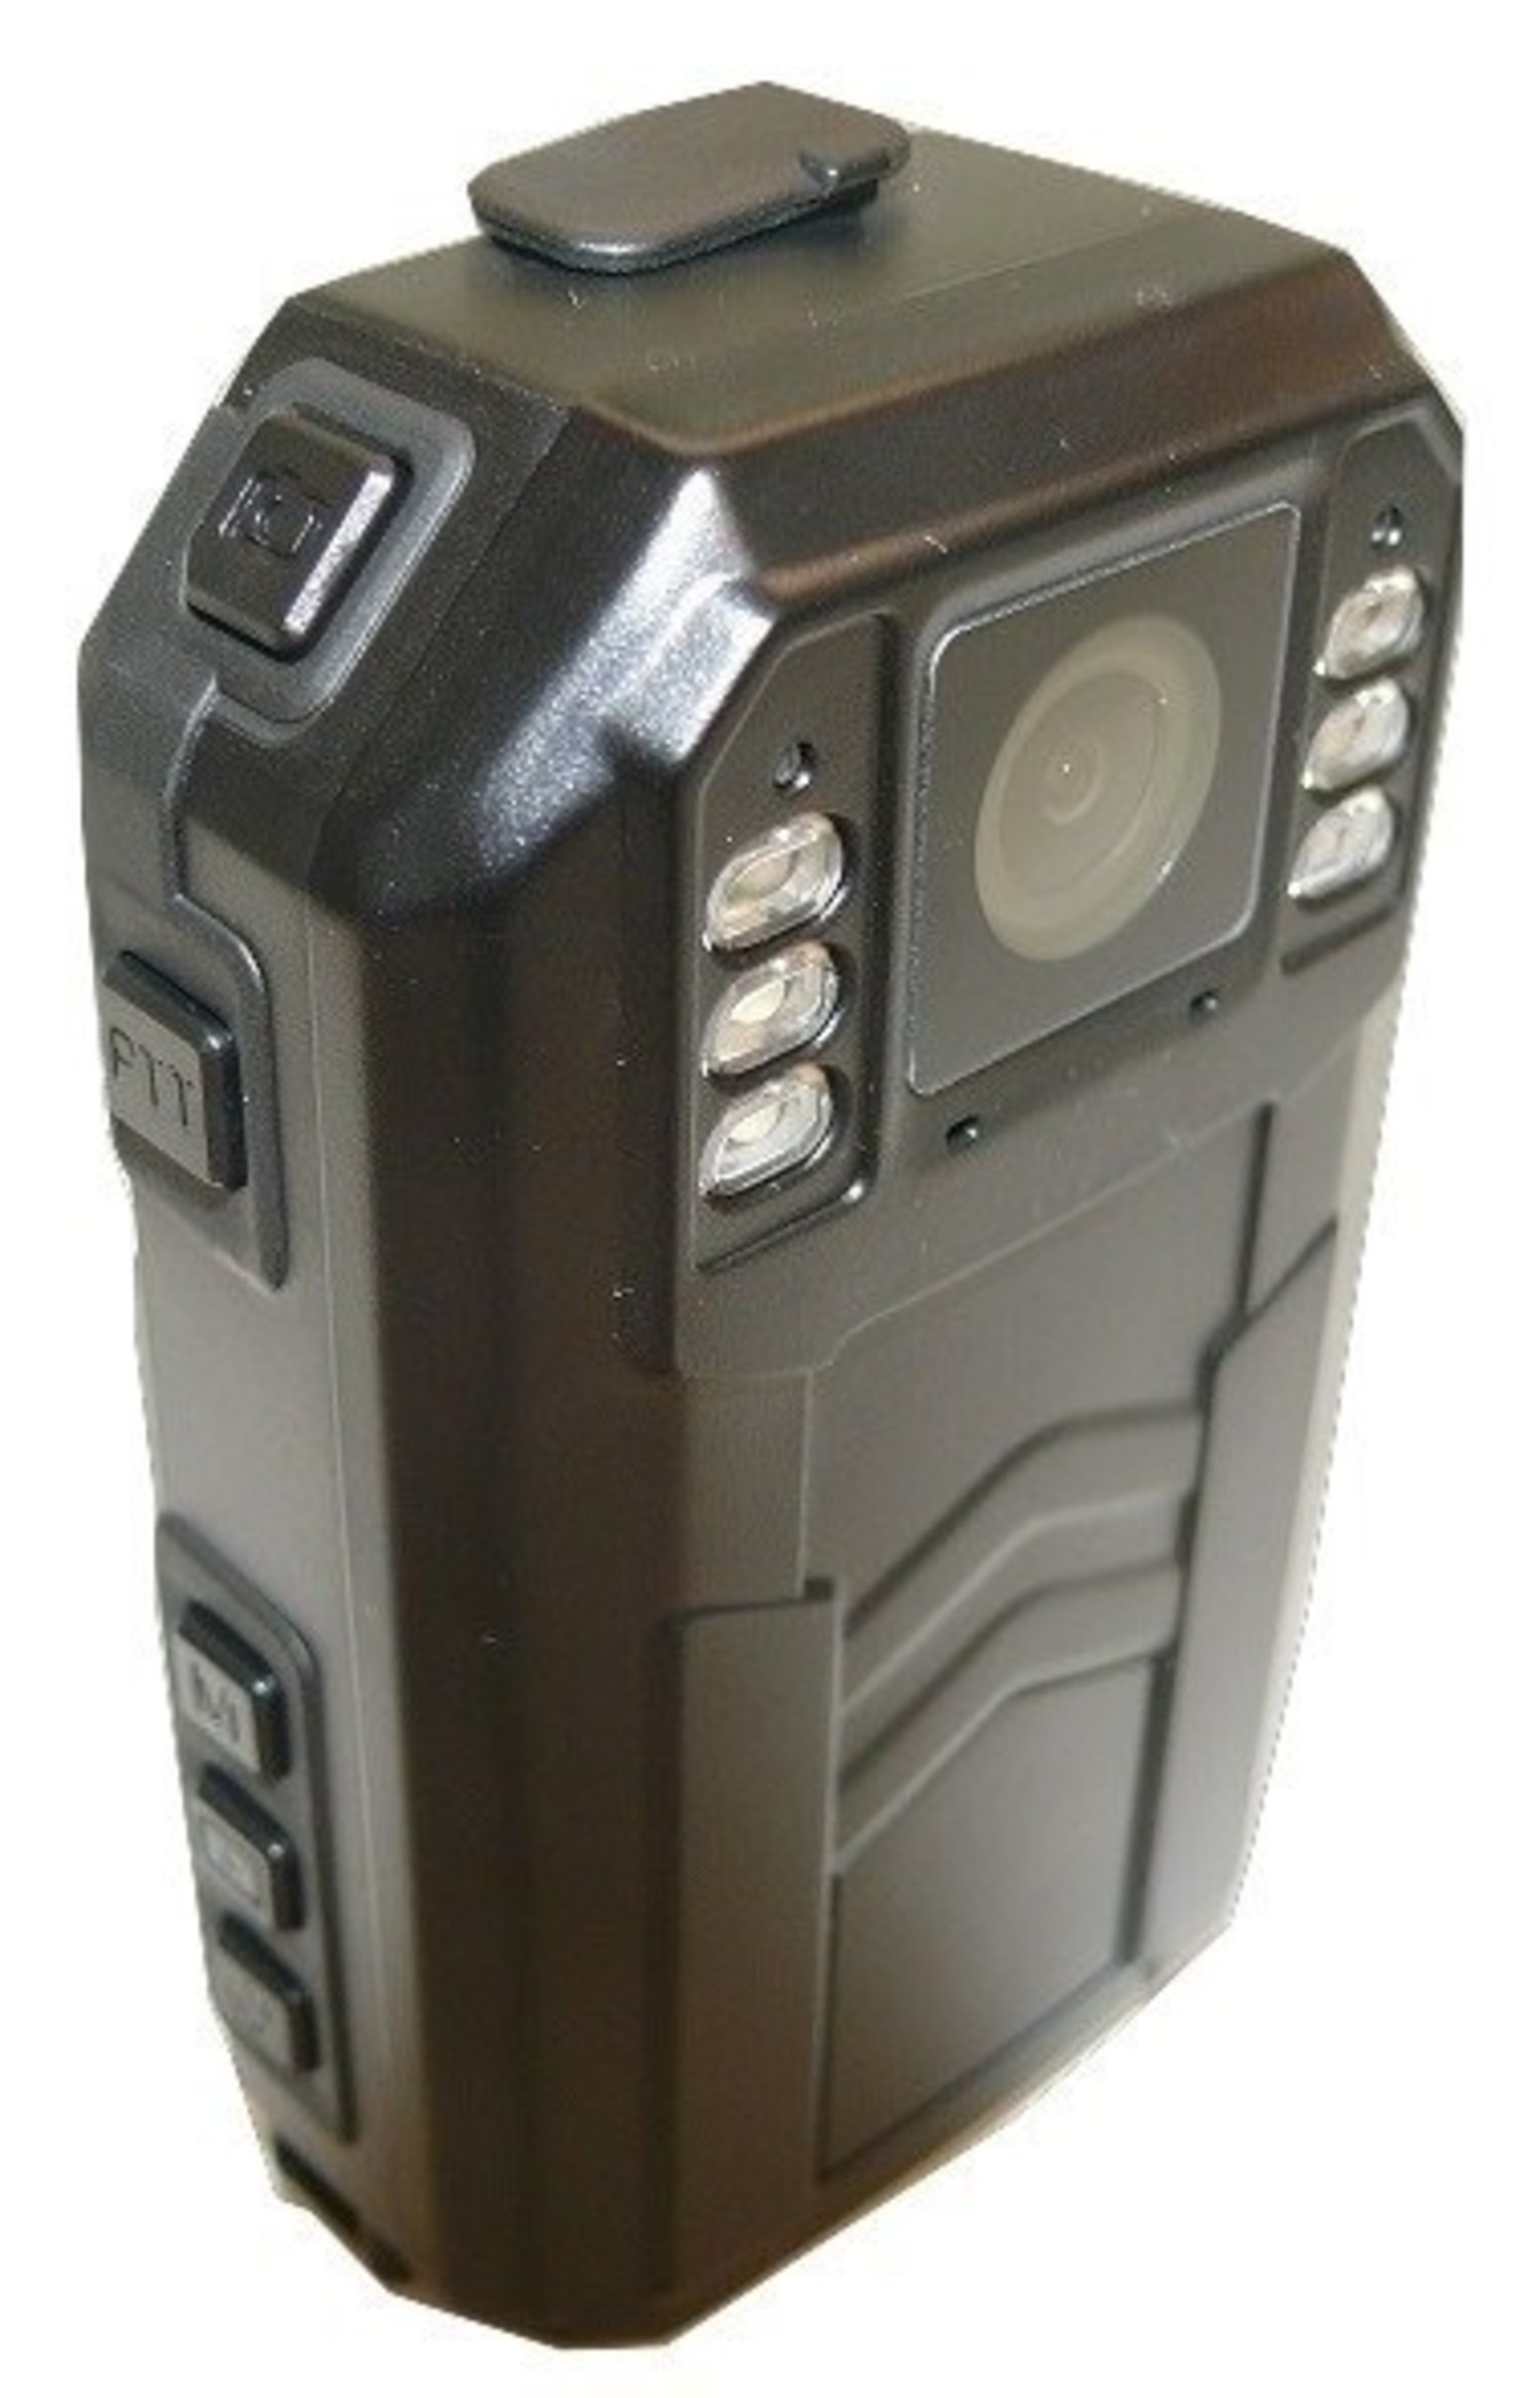 Titan Body Camera Exceeds Expectations and Eliminates Monthly Fees